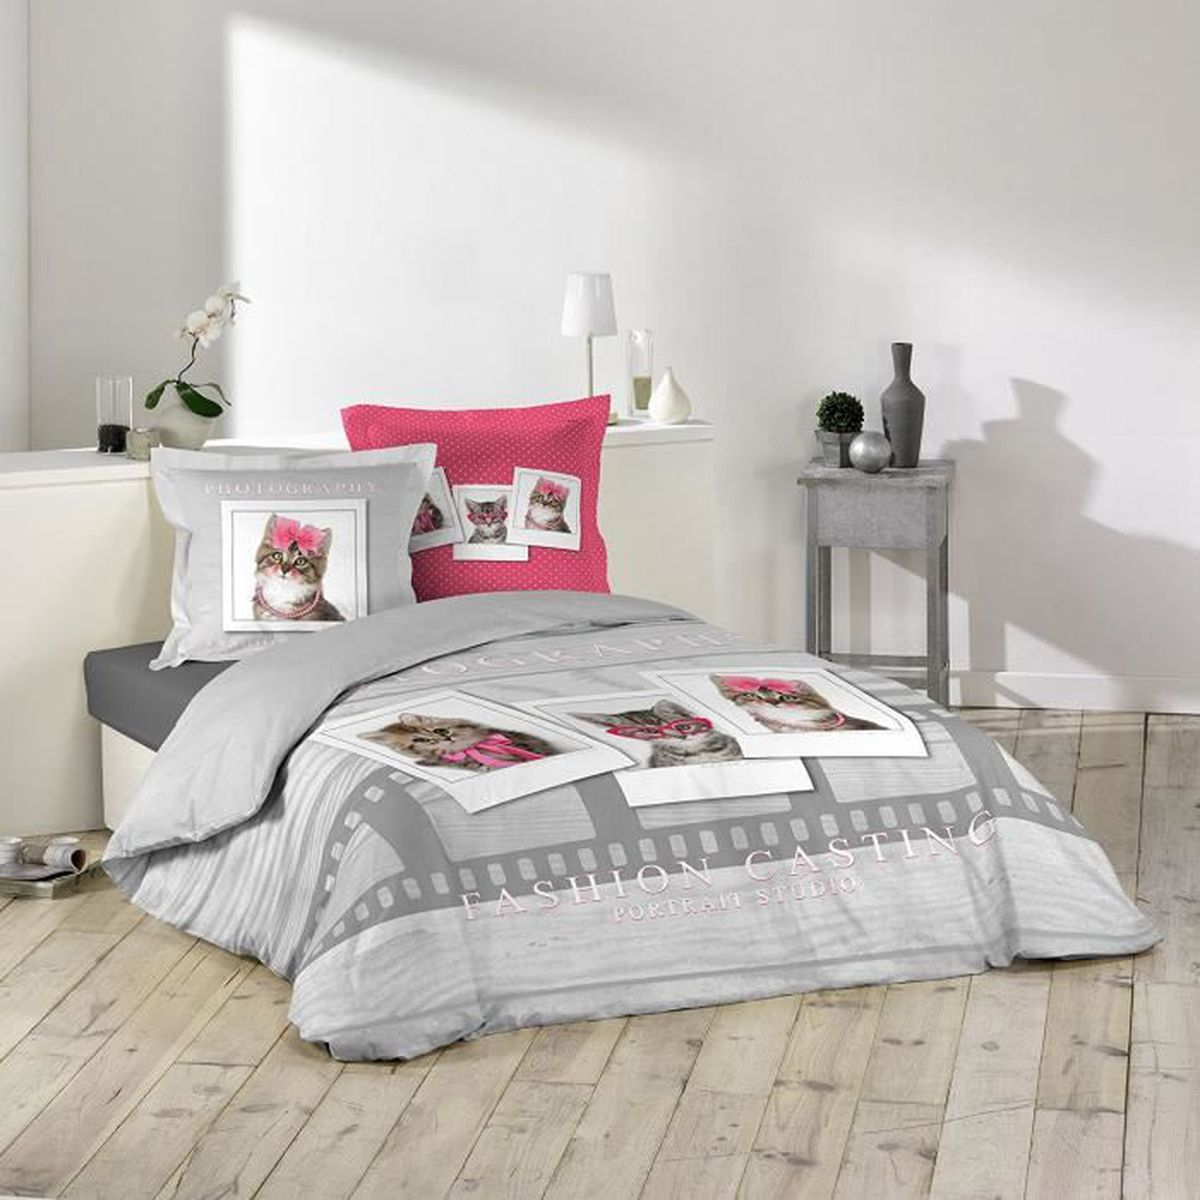 housse couette petit chat enfant 220 x 240cm 100 coton gris clair rose achat vente. Black Bedroom Furniture Sets. Home Design Ideas